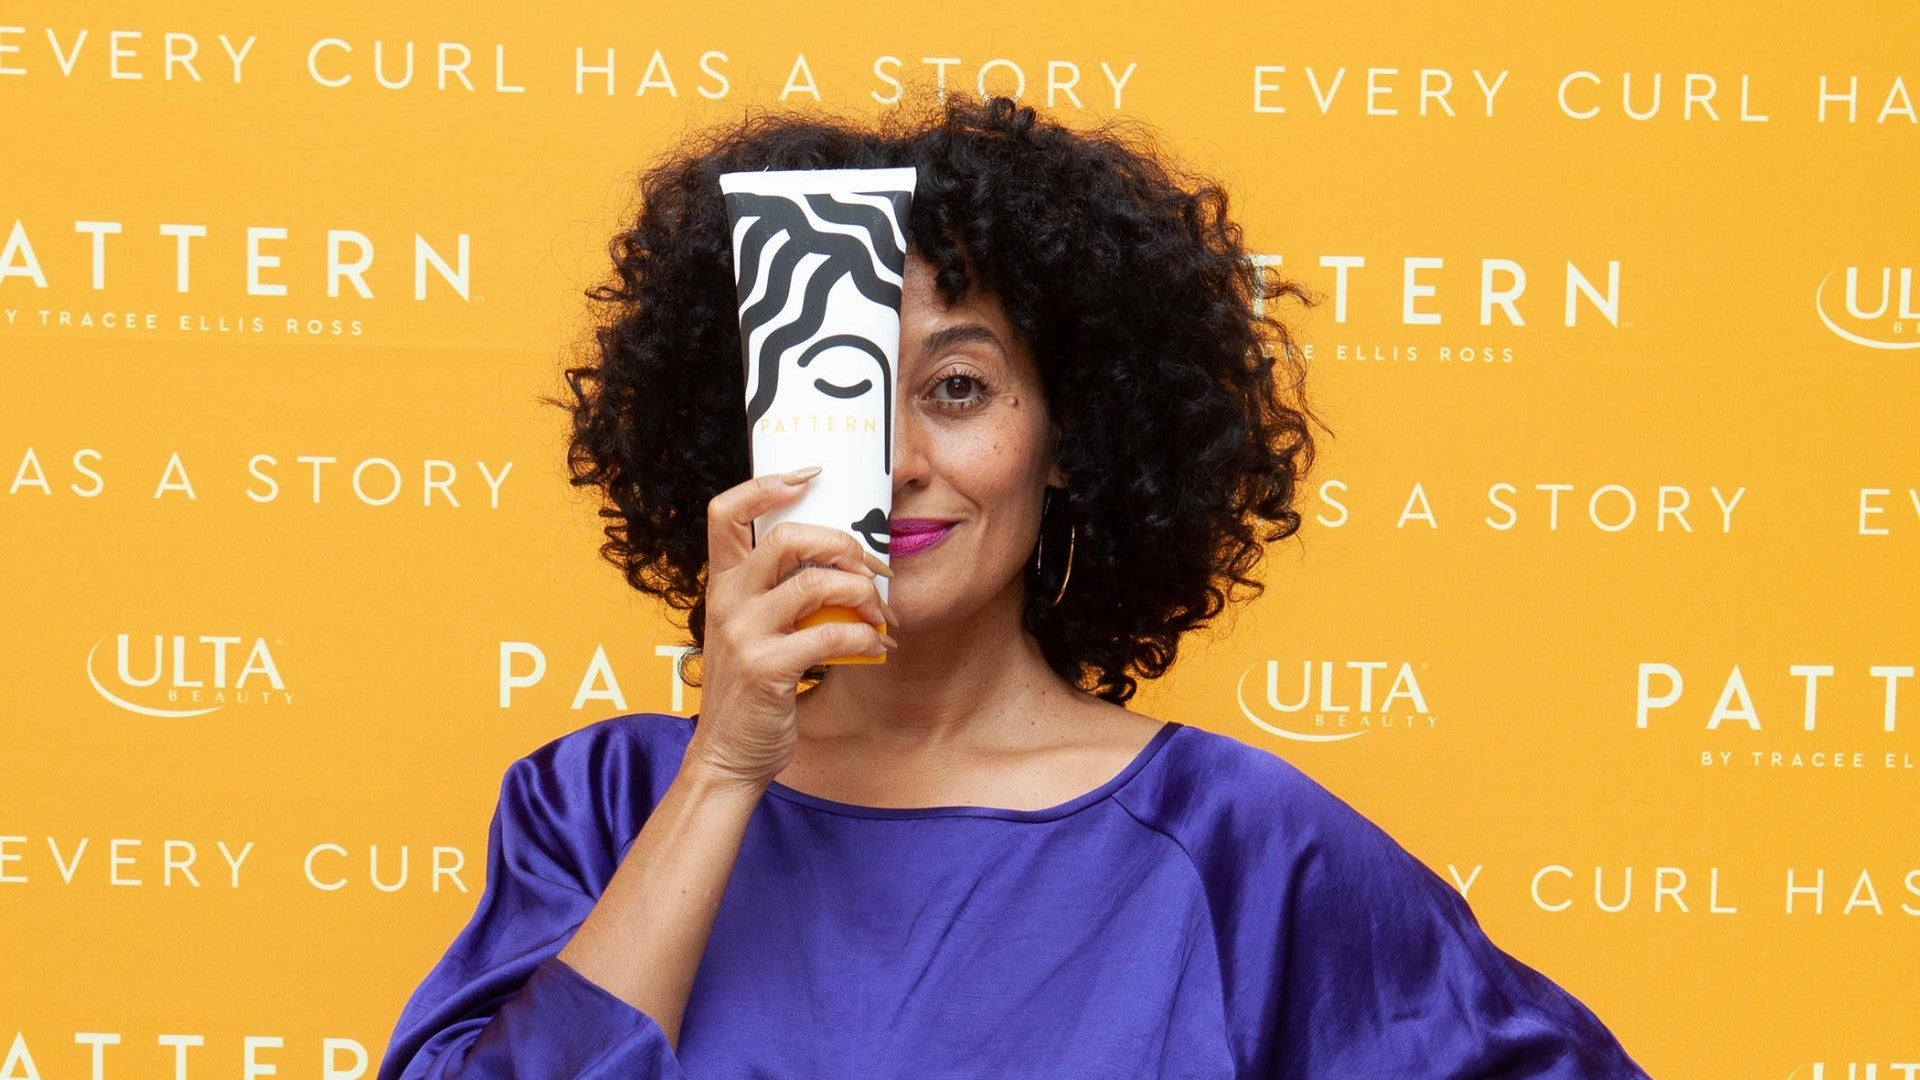 Tracee Ellis Ross Gave Chicago Shoppers Juicy Curls